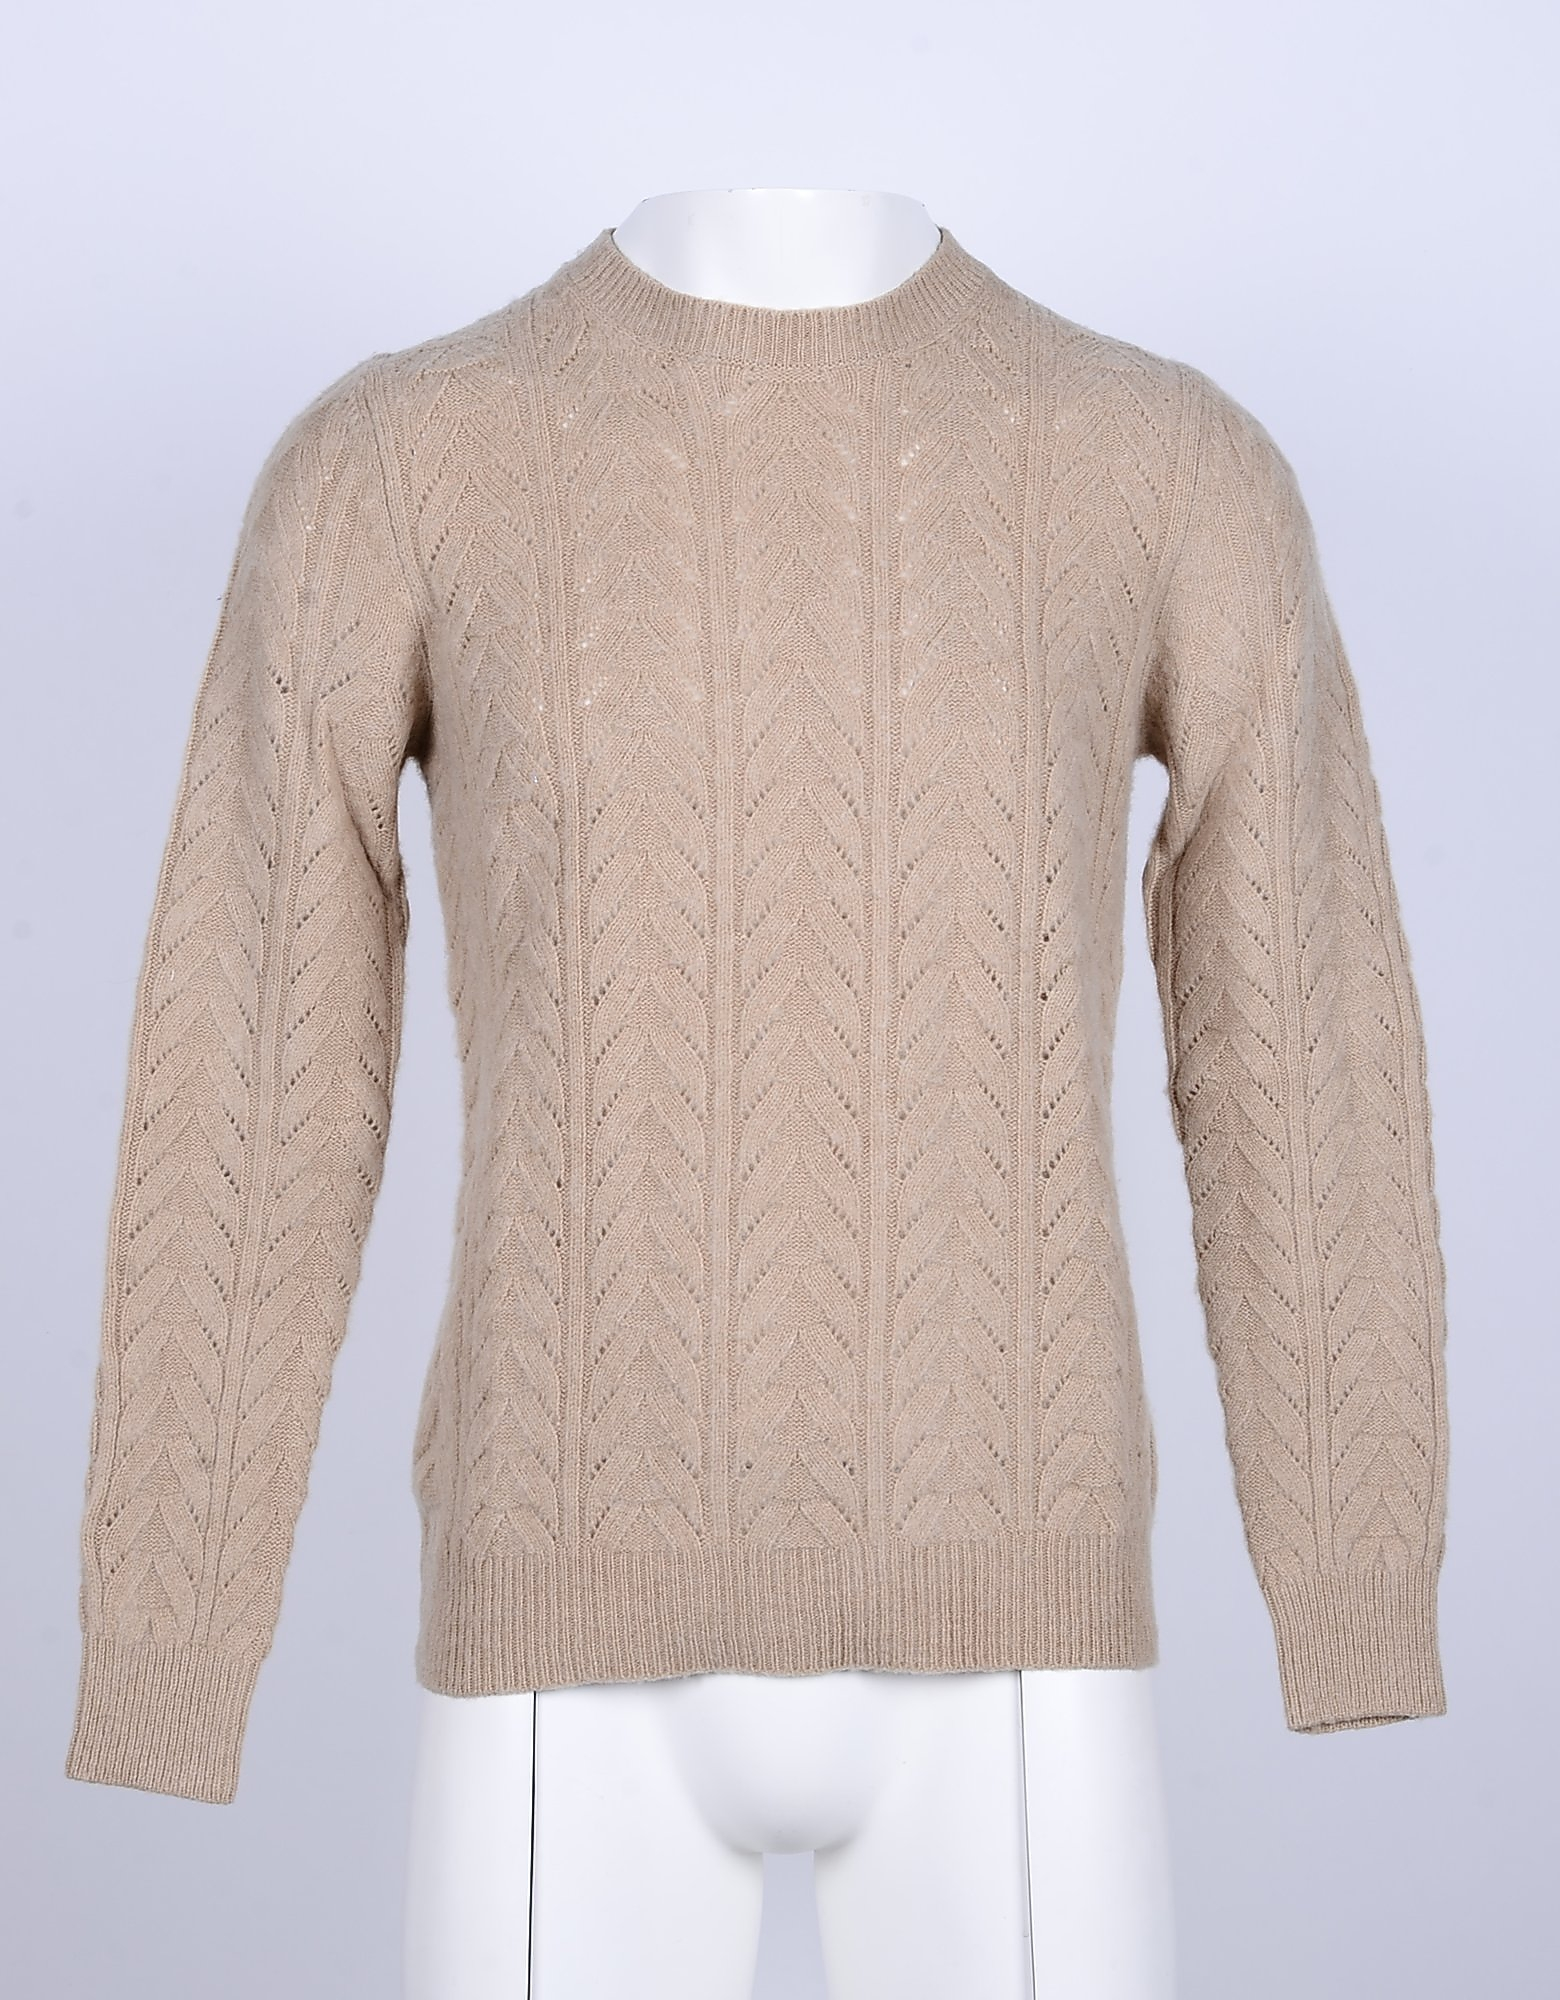 Aglini Designer Knitwear, Camel Cable Knit Wool and Cashmere Men's Sweater